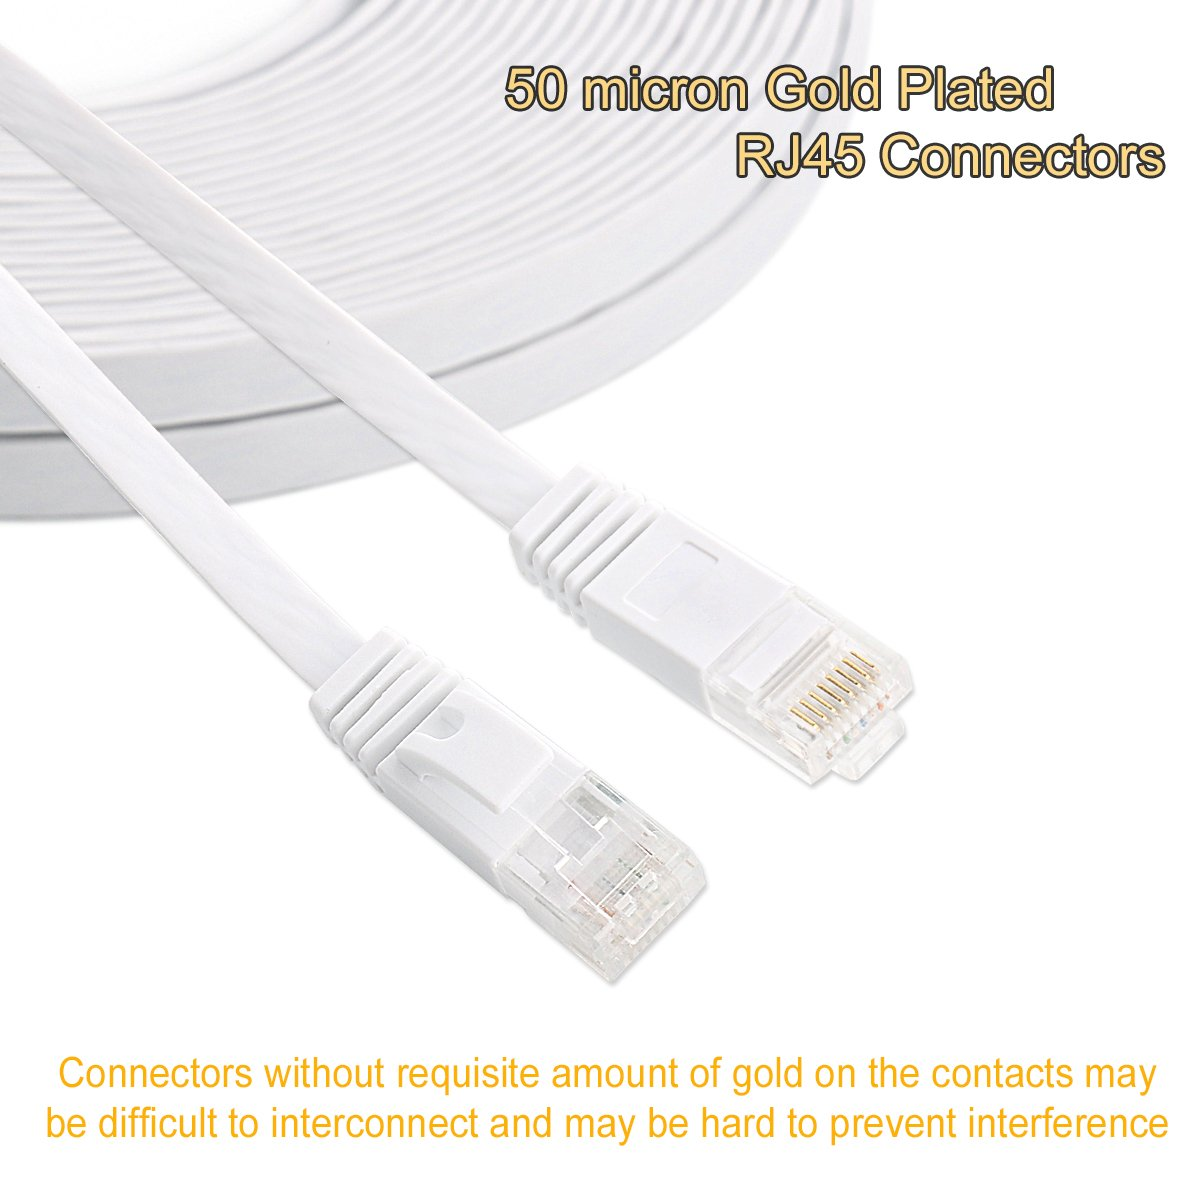 Ethernet Rj45 Connector Modular Crimp Wiring A Jack Connectors Plugs 50 Micron Gold Plated Only For Cat6 32awg Flat Cable Computers